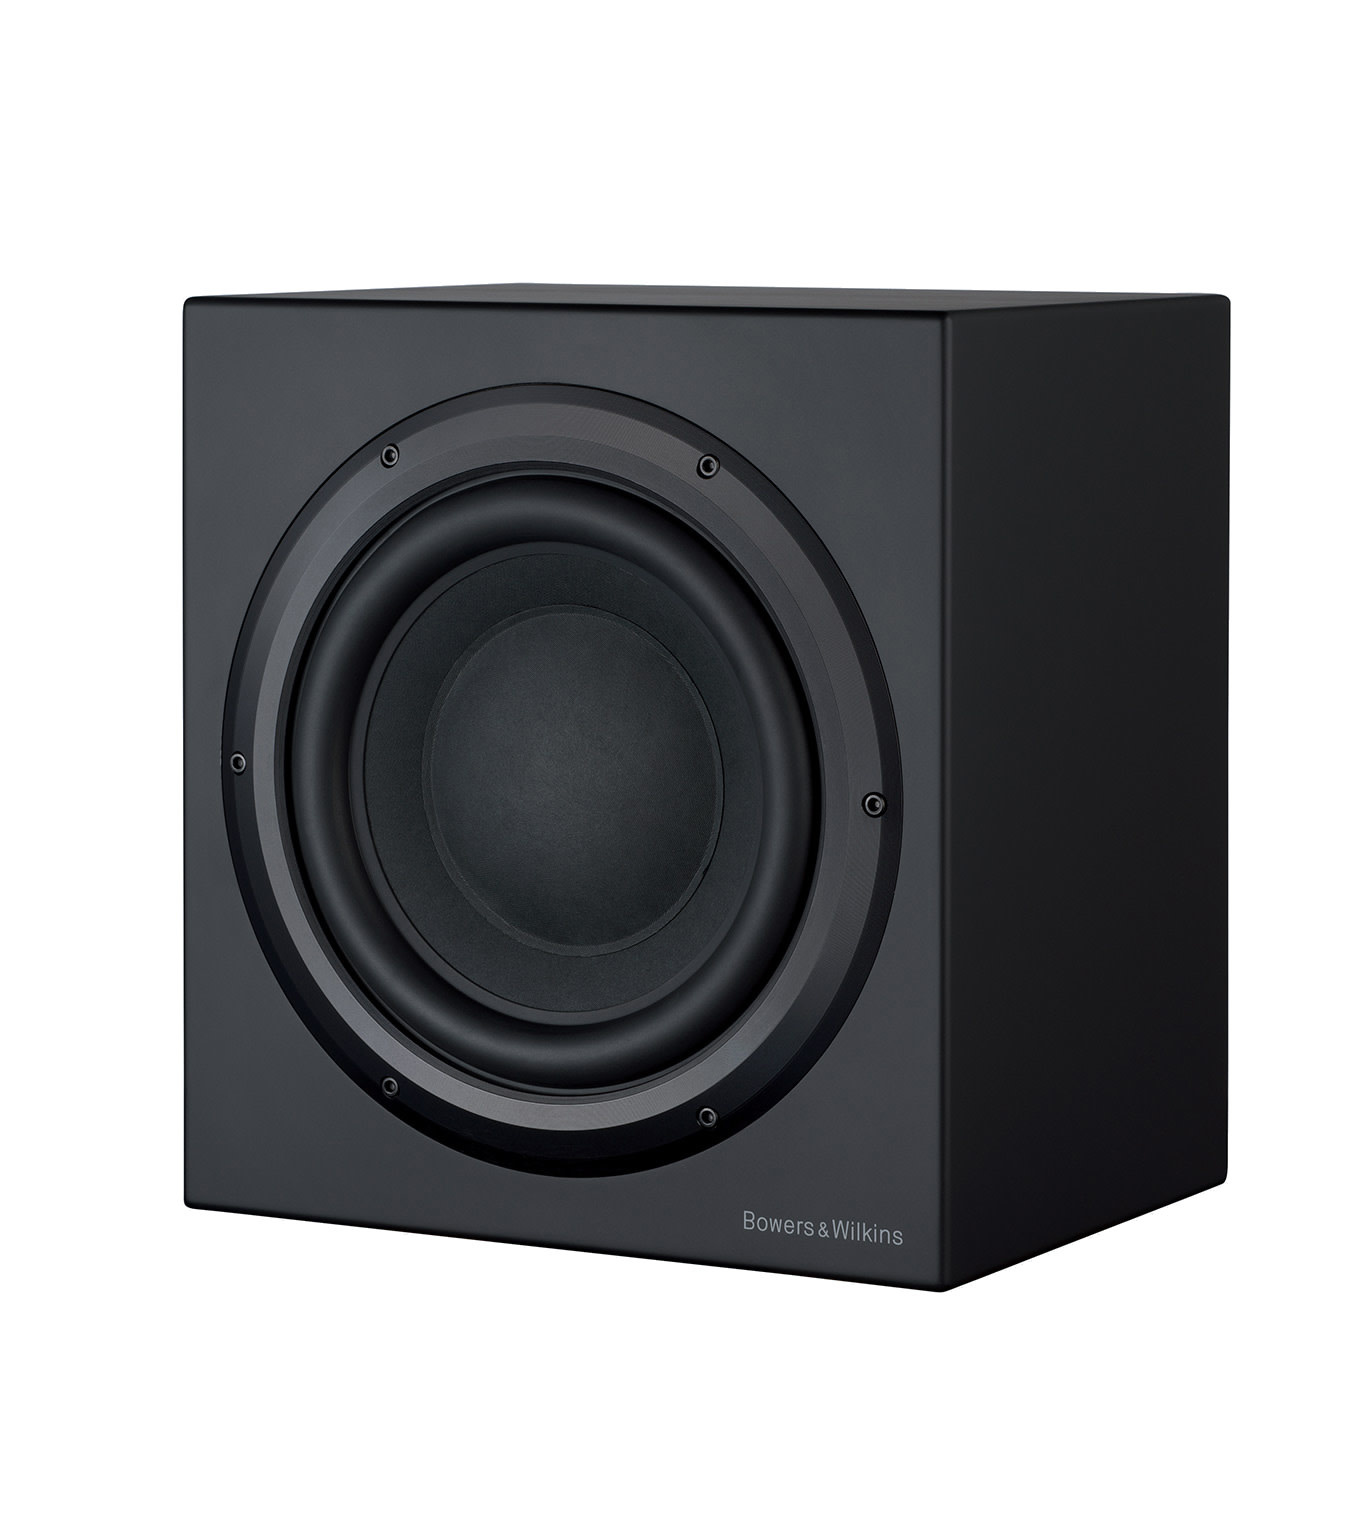 Bowers & Wilkins CTSW10 Subwoofer ( each )